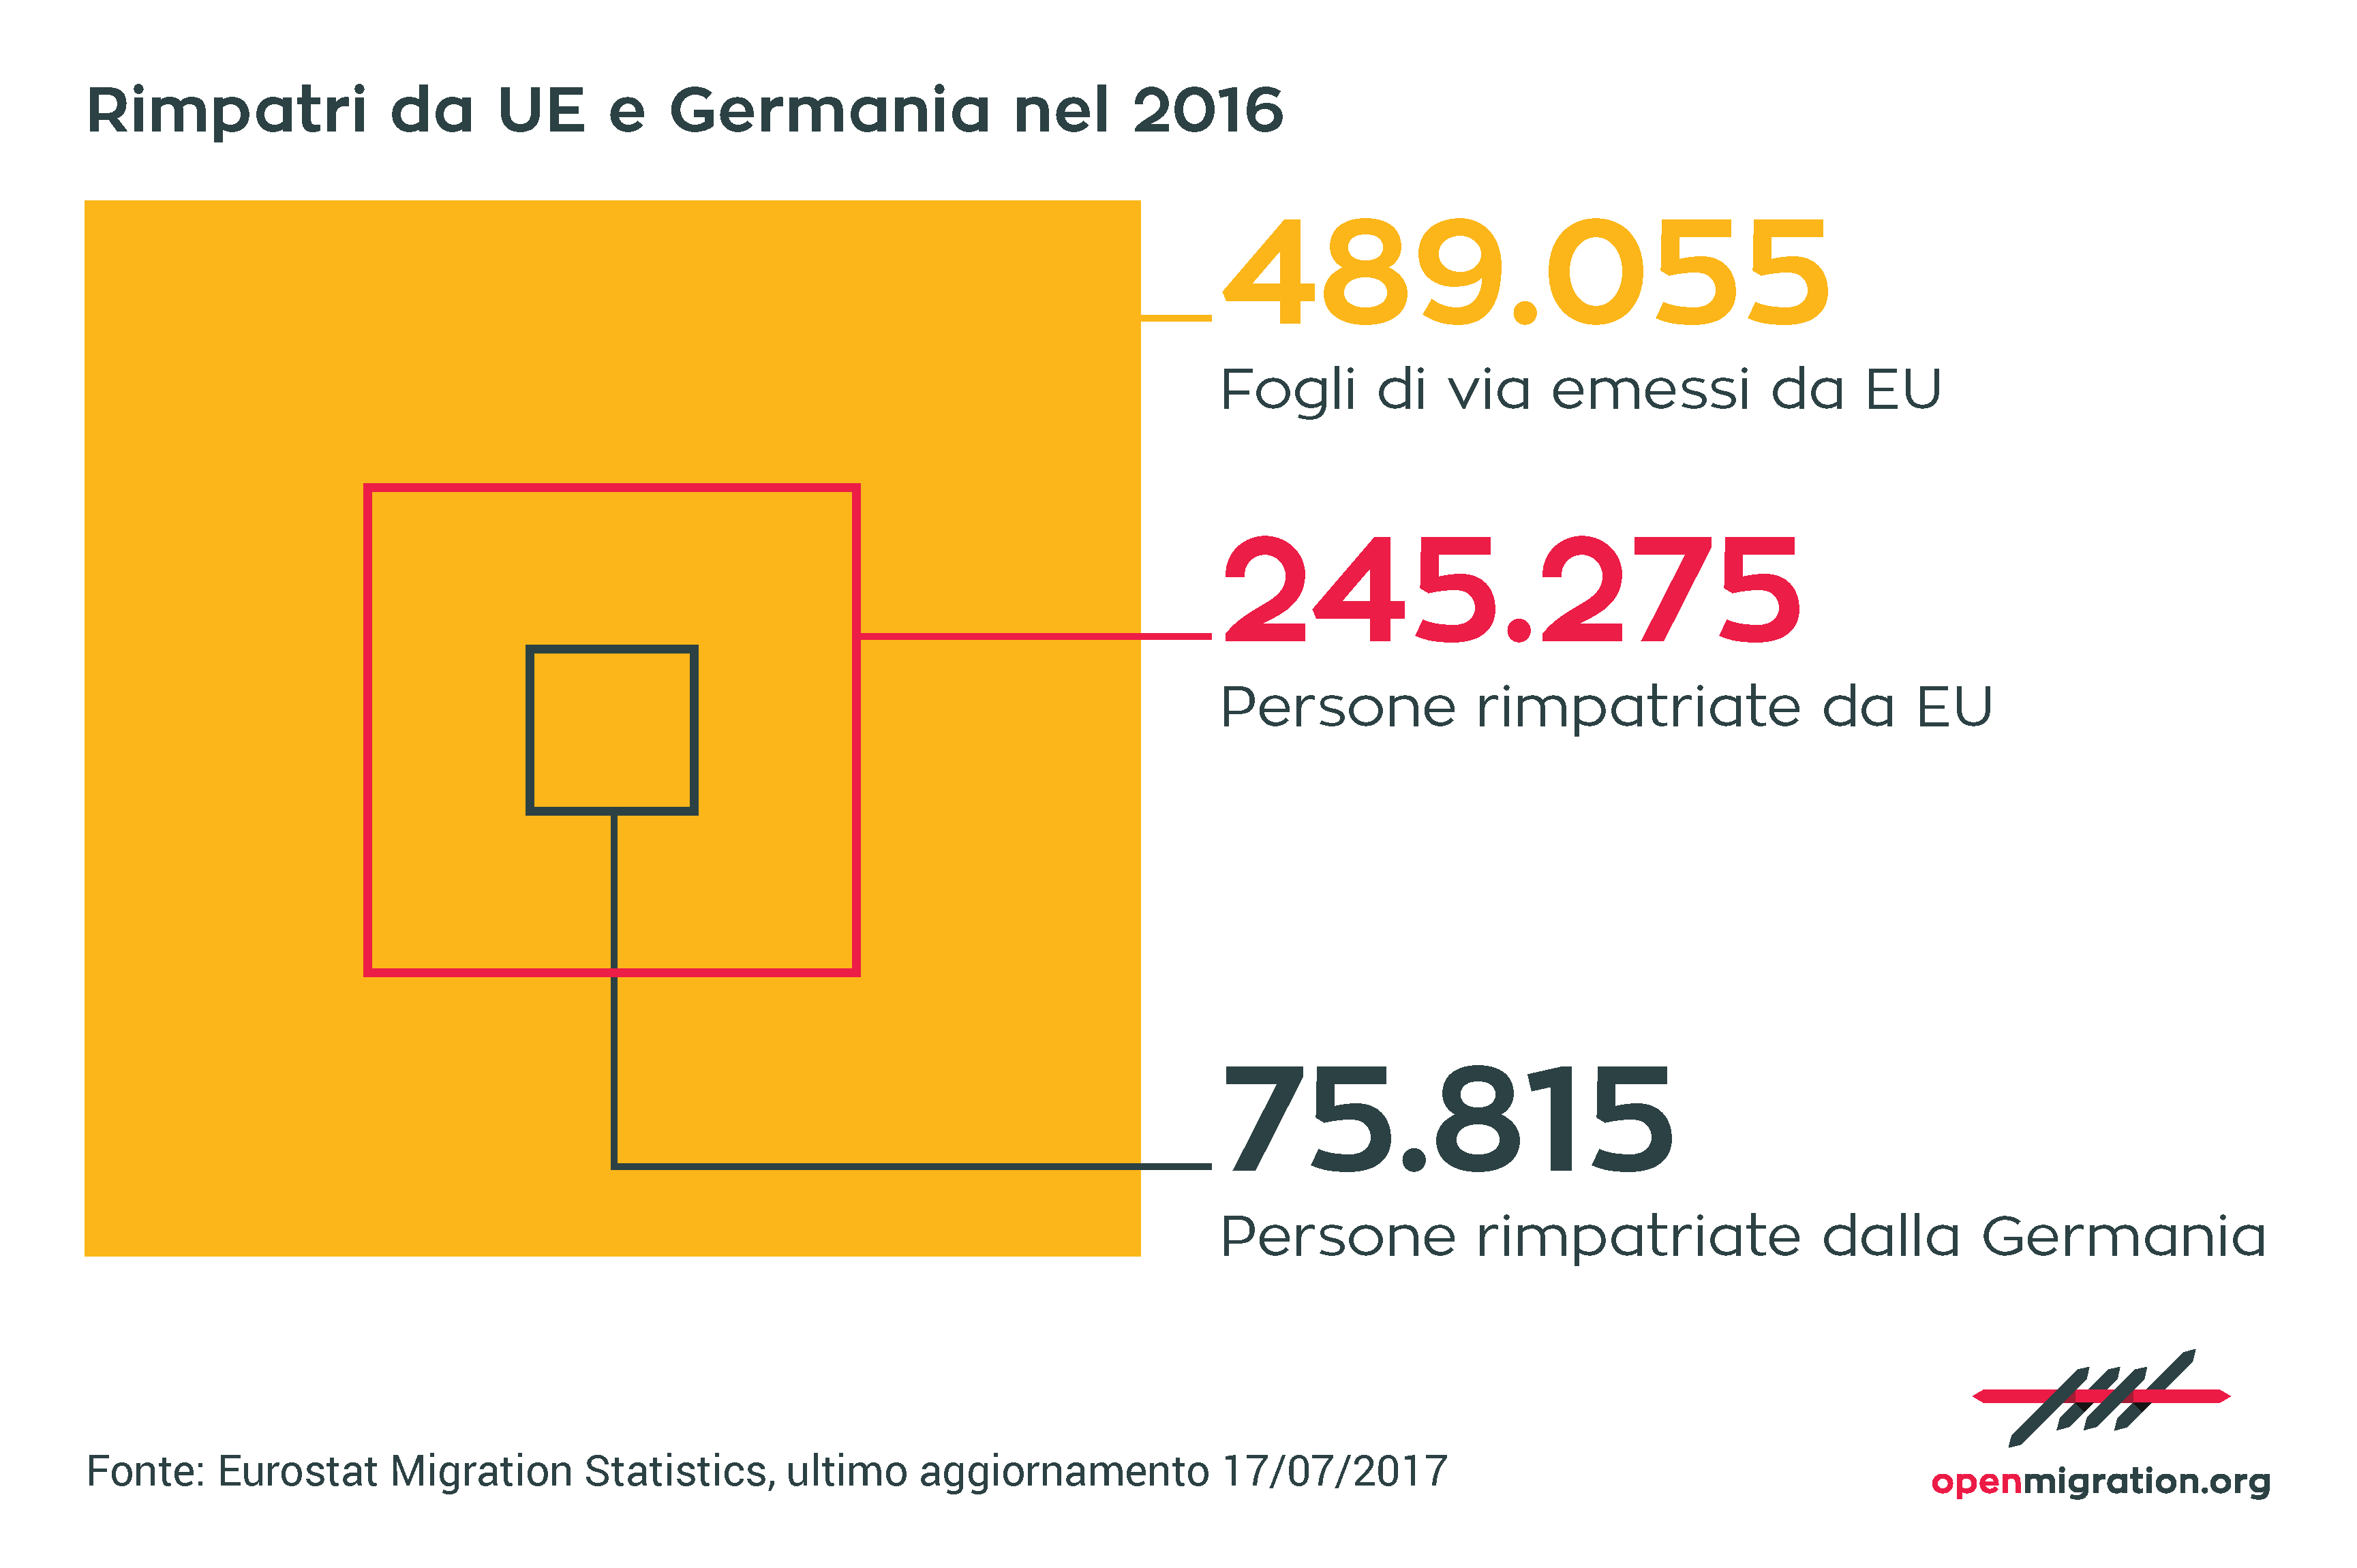 Rimpatri da UE e Germania, 2016